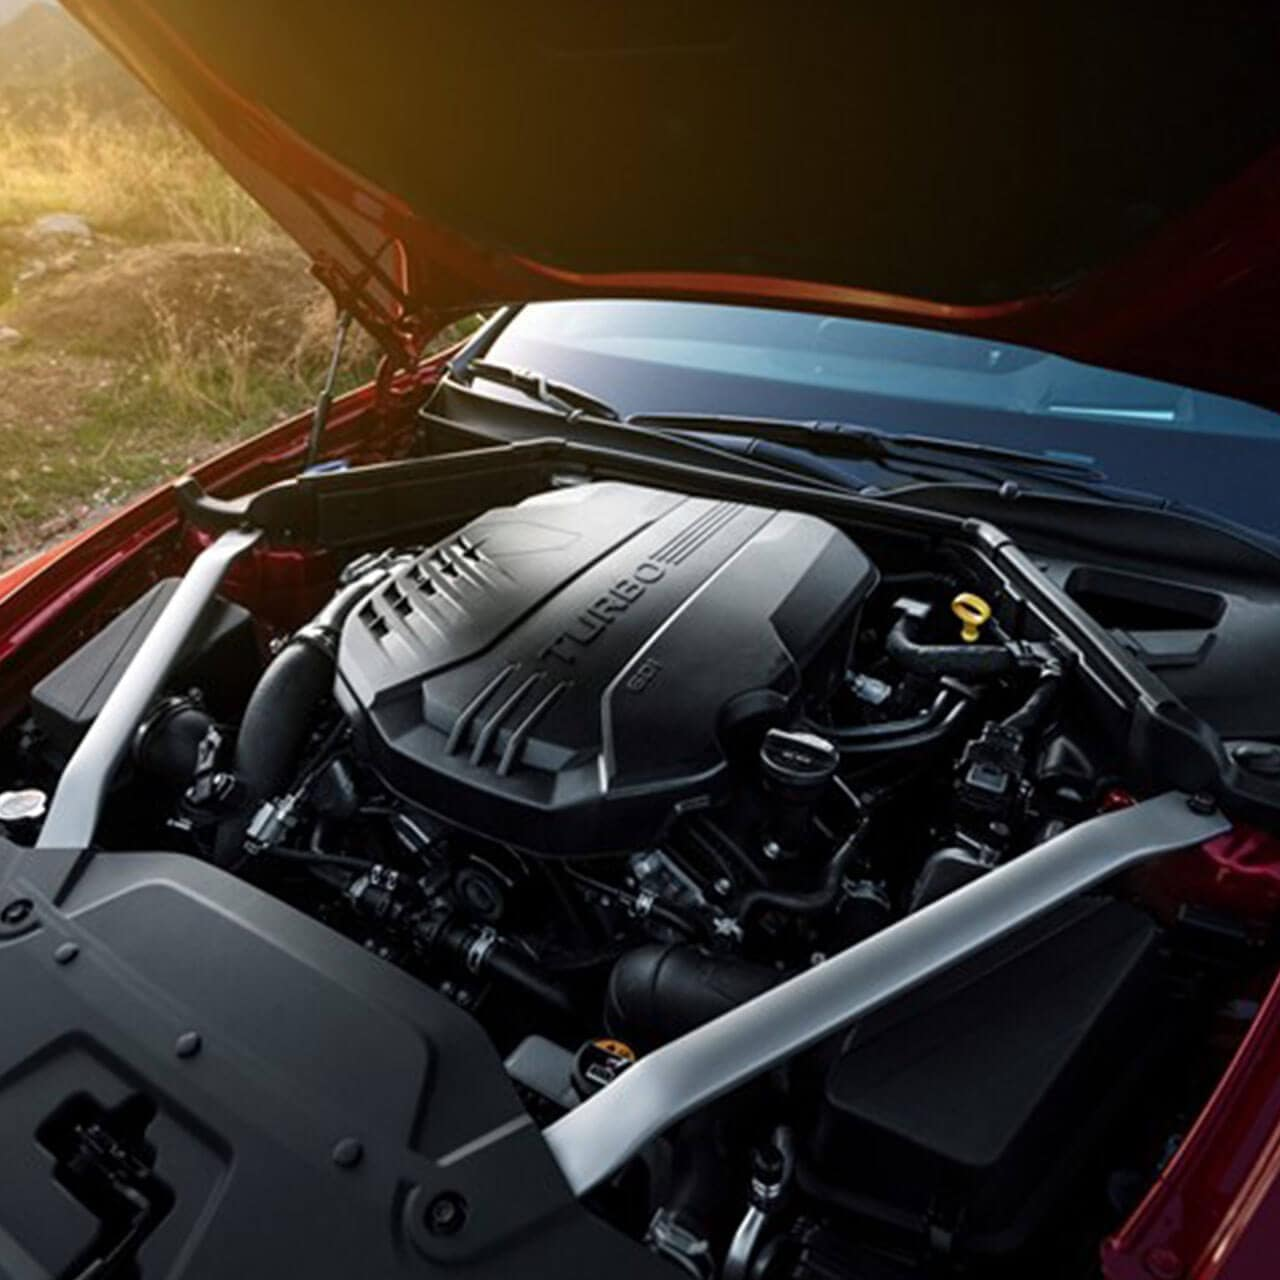 engine of 2018 Kia Stinger